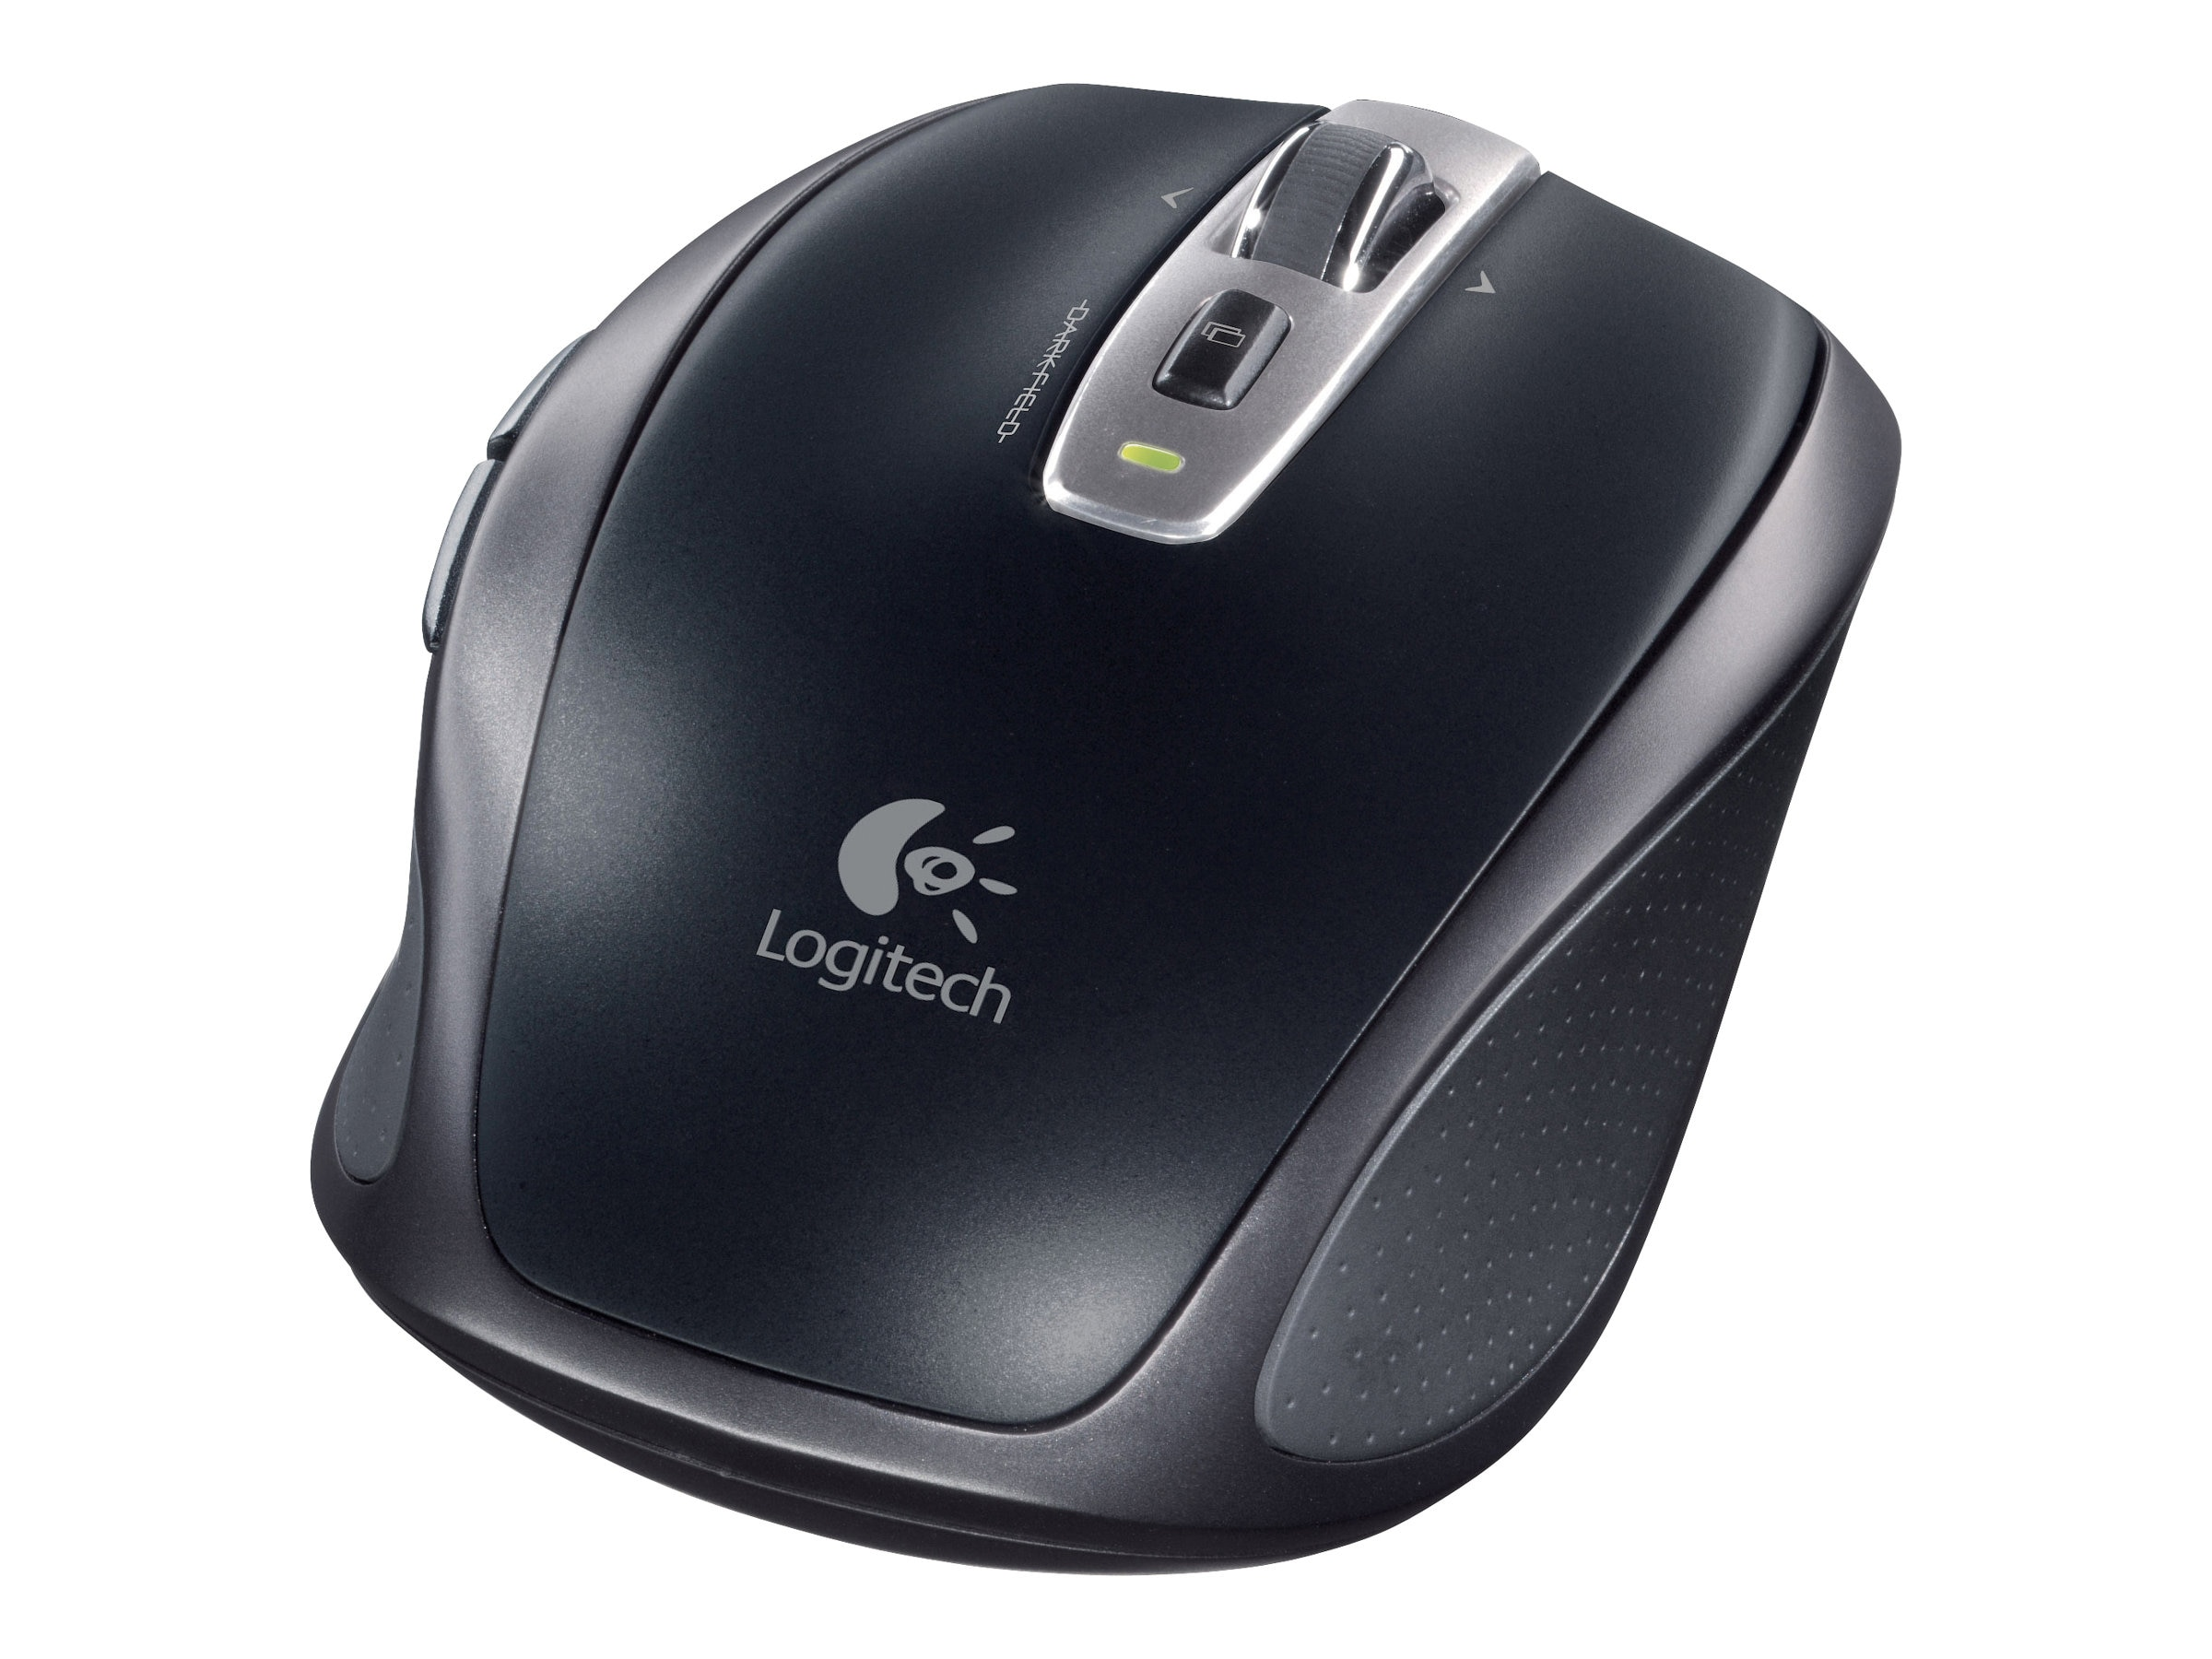 Logitech Anywhere Mouse MX, 2.4GHz Unifying Receiver, 910-002896